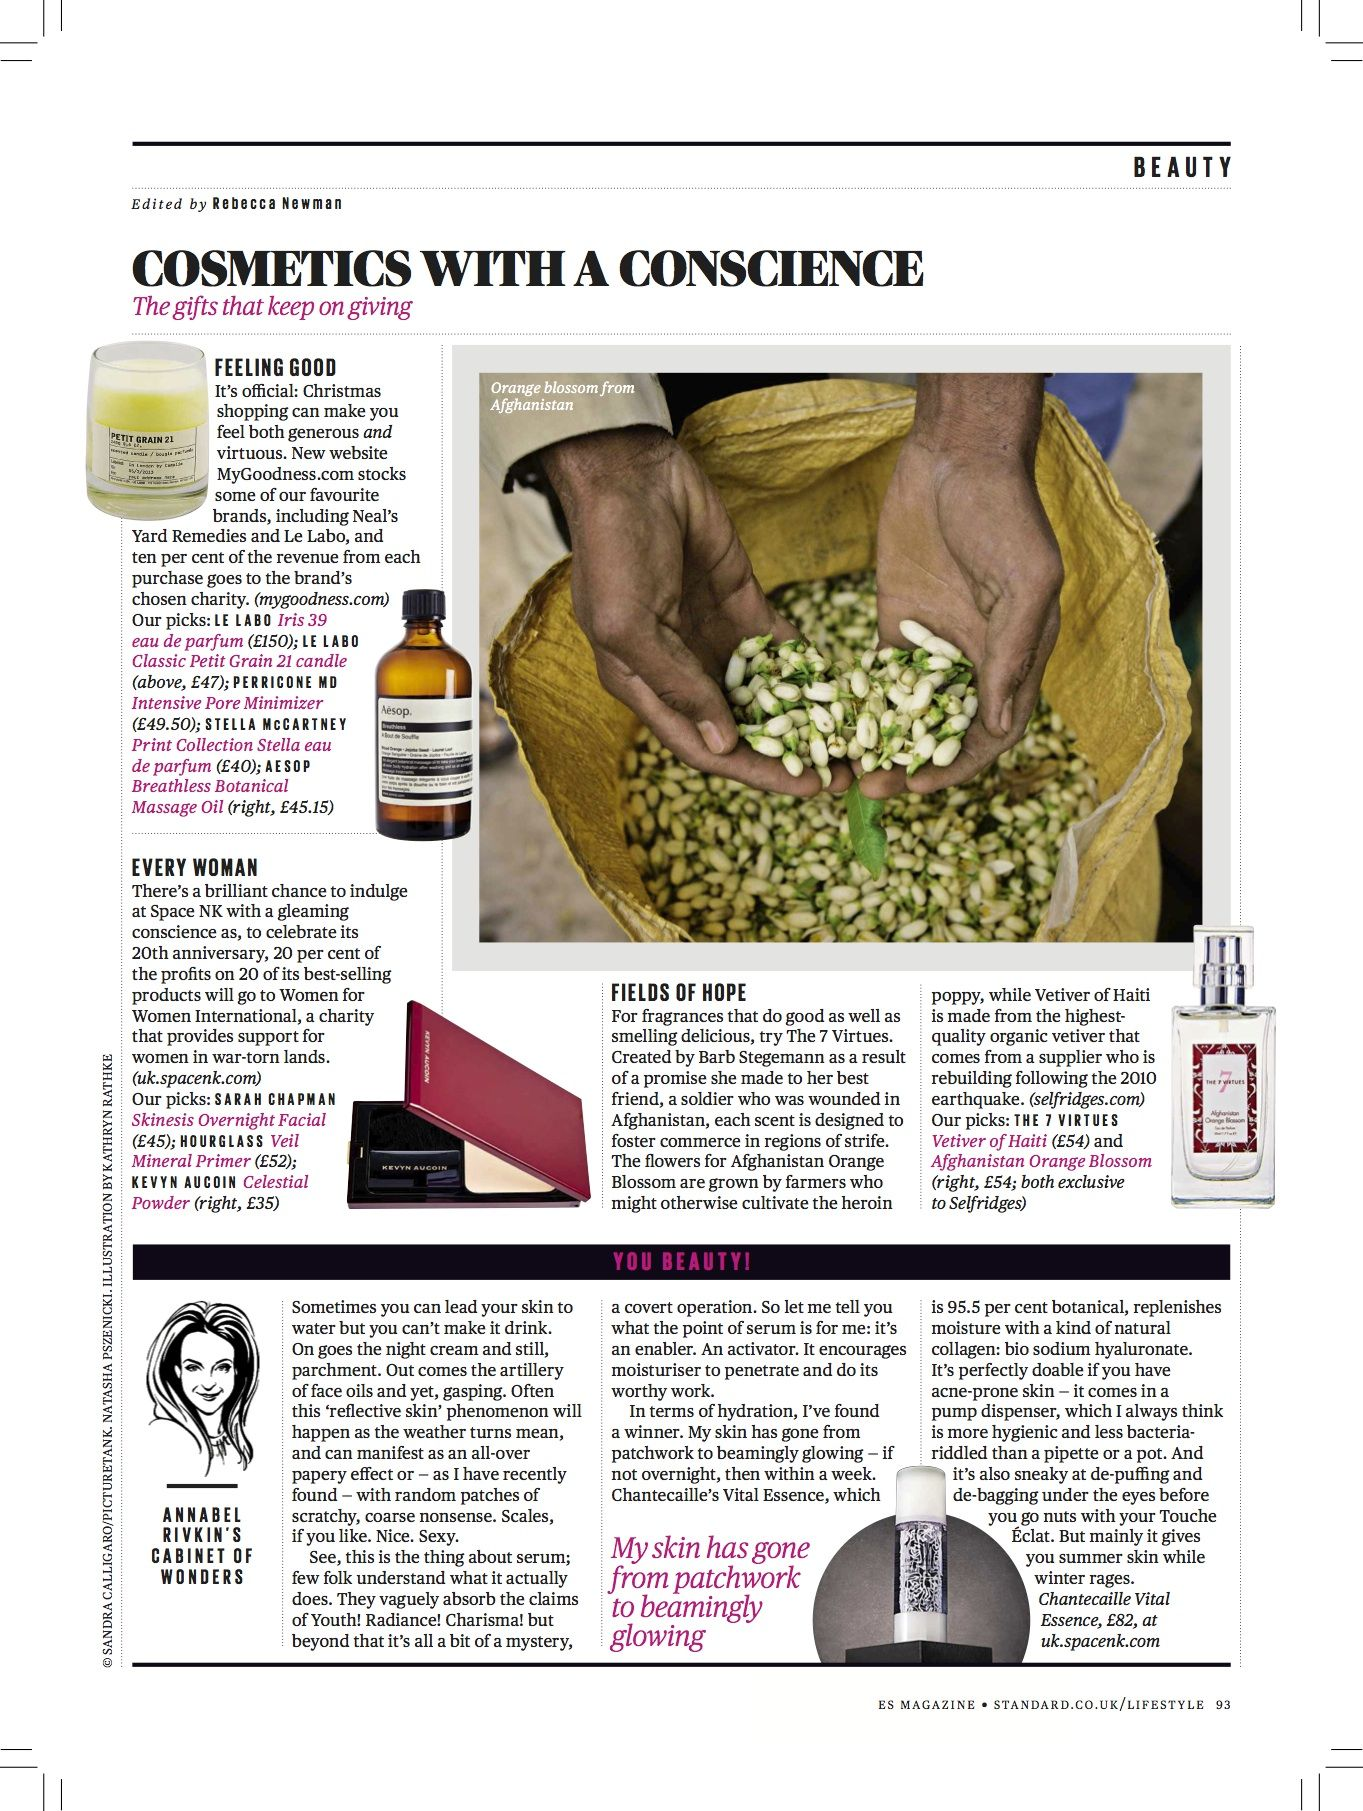 8498c051edec Our fragrance story of empowerment in the Evening Standard Magazine ...